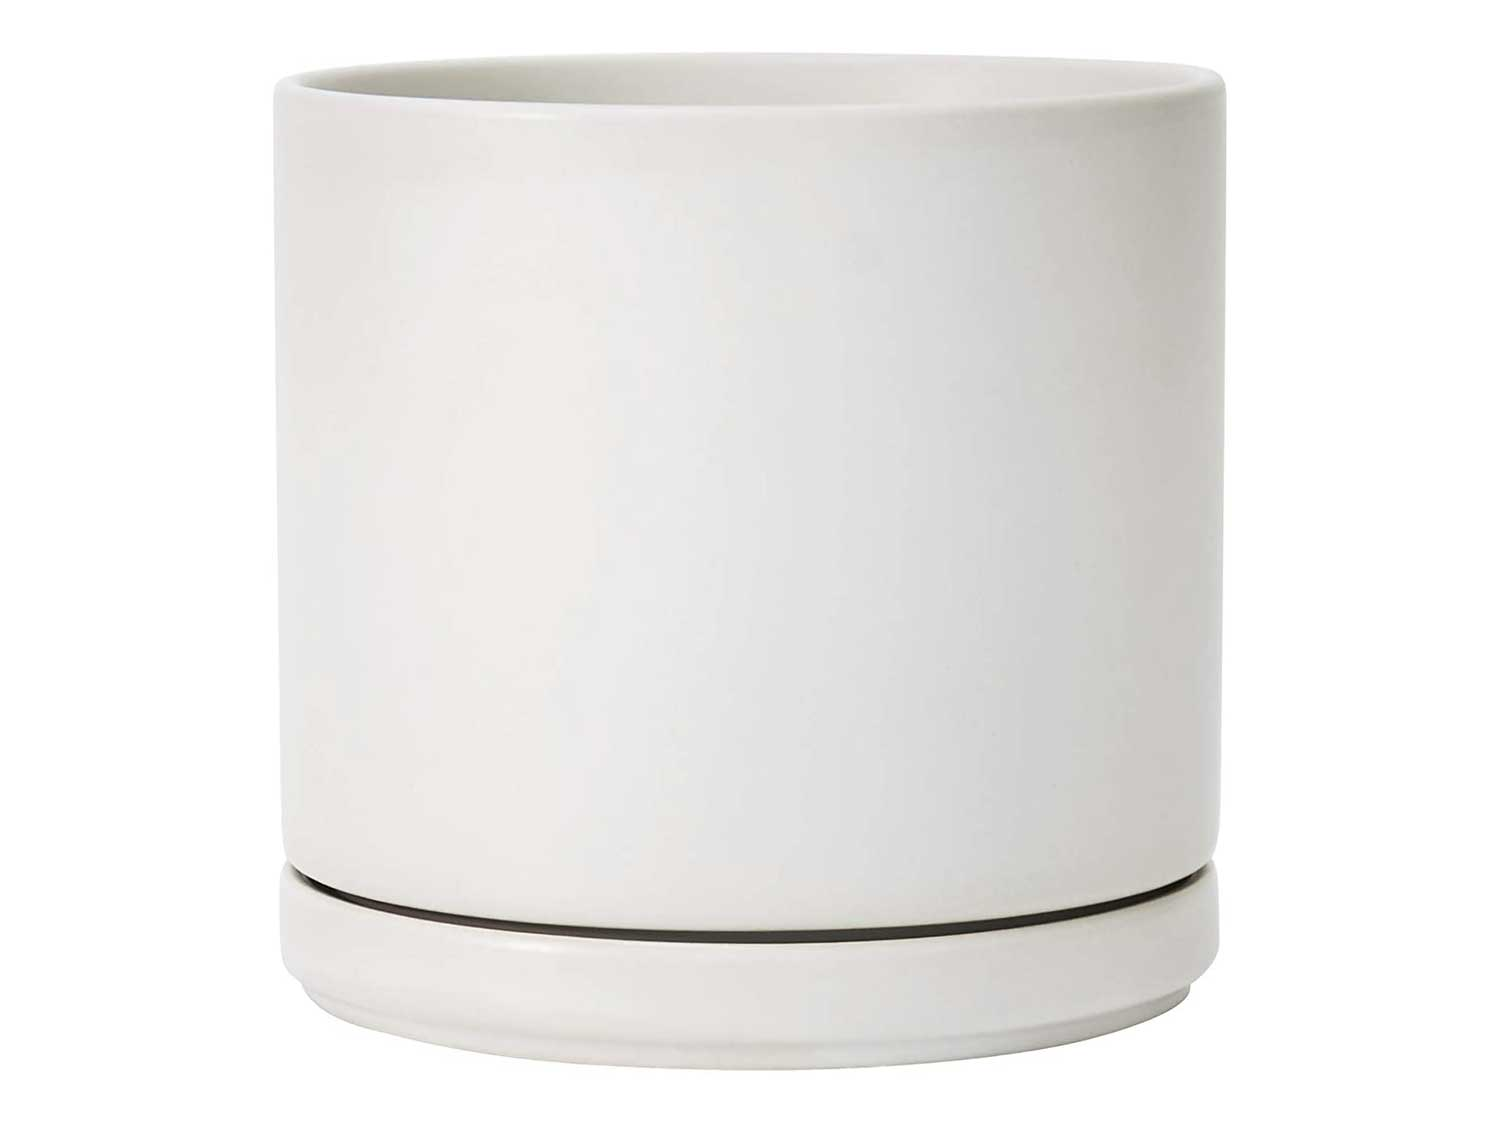 Ceramic Planter Pot with Drainage Hole and Saucer, Indoor Cylinder Round Planter Pot, 6 Inch, White